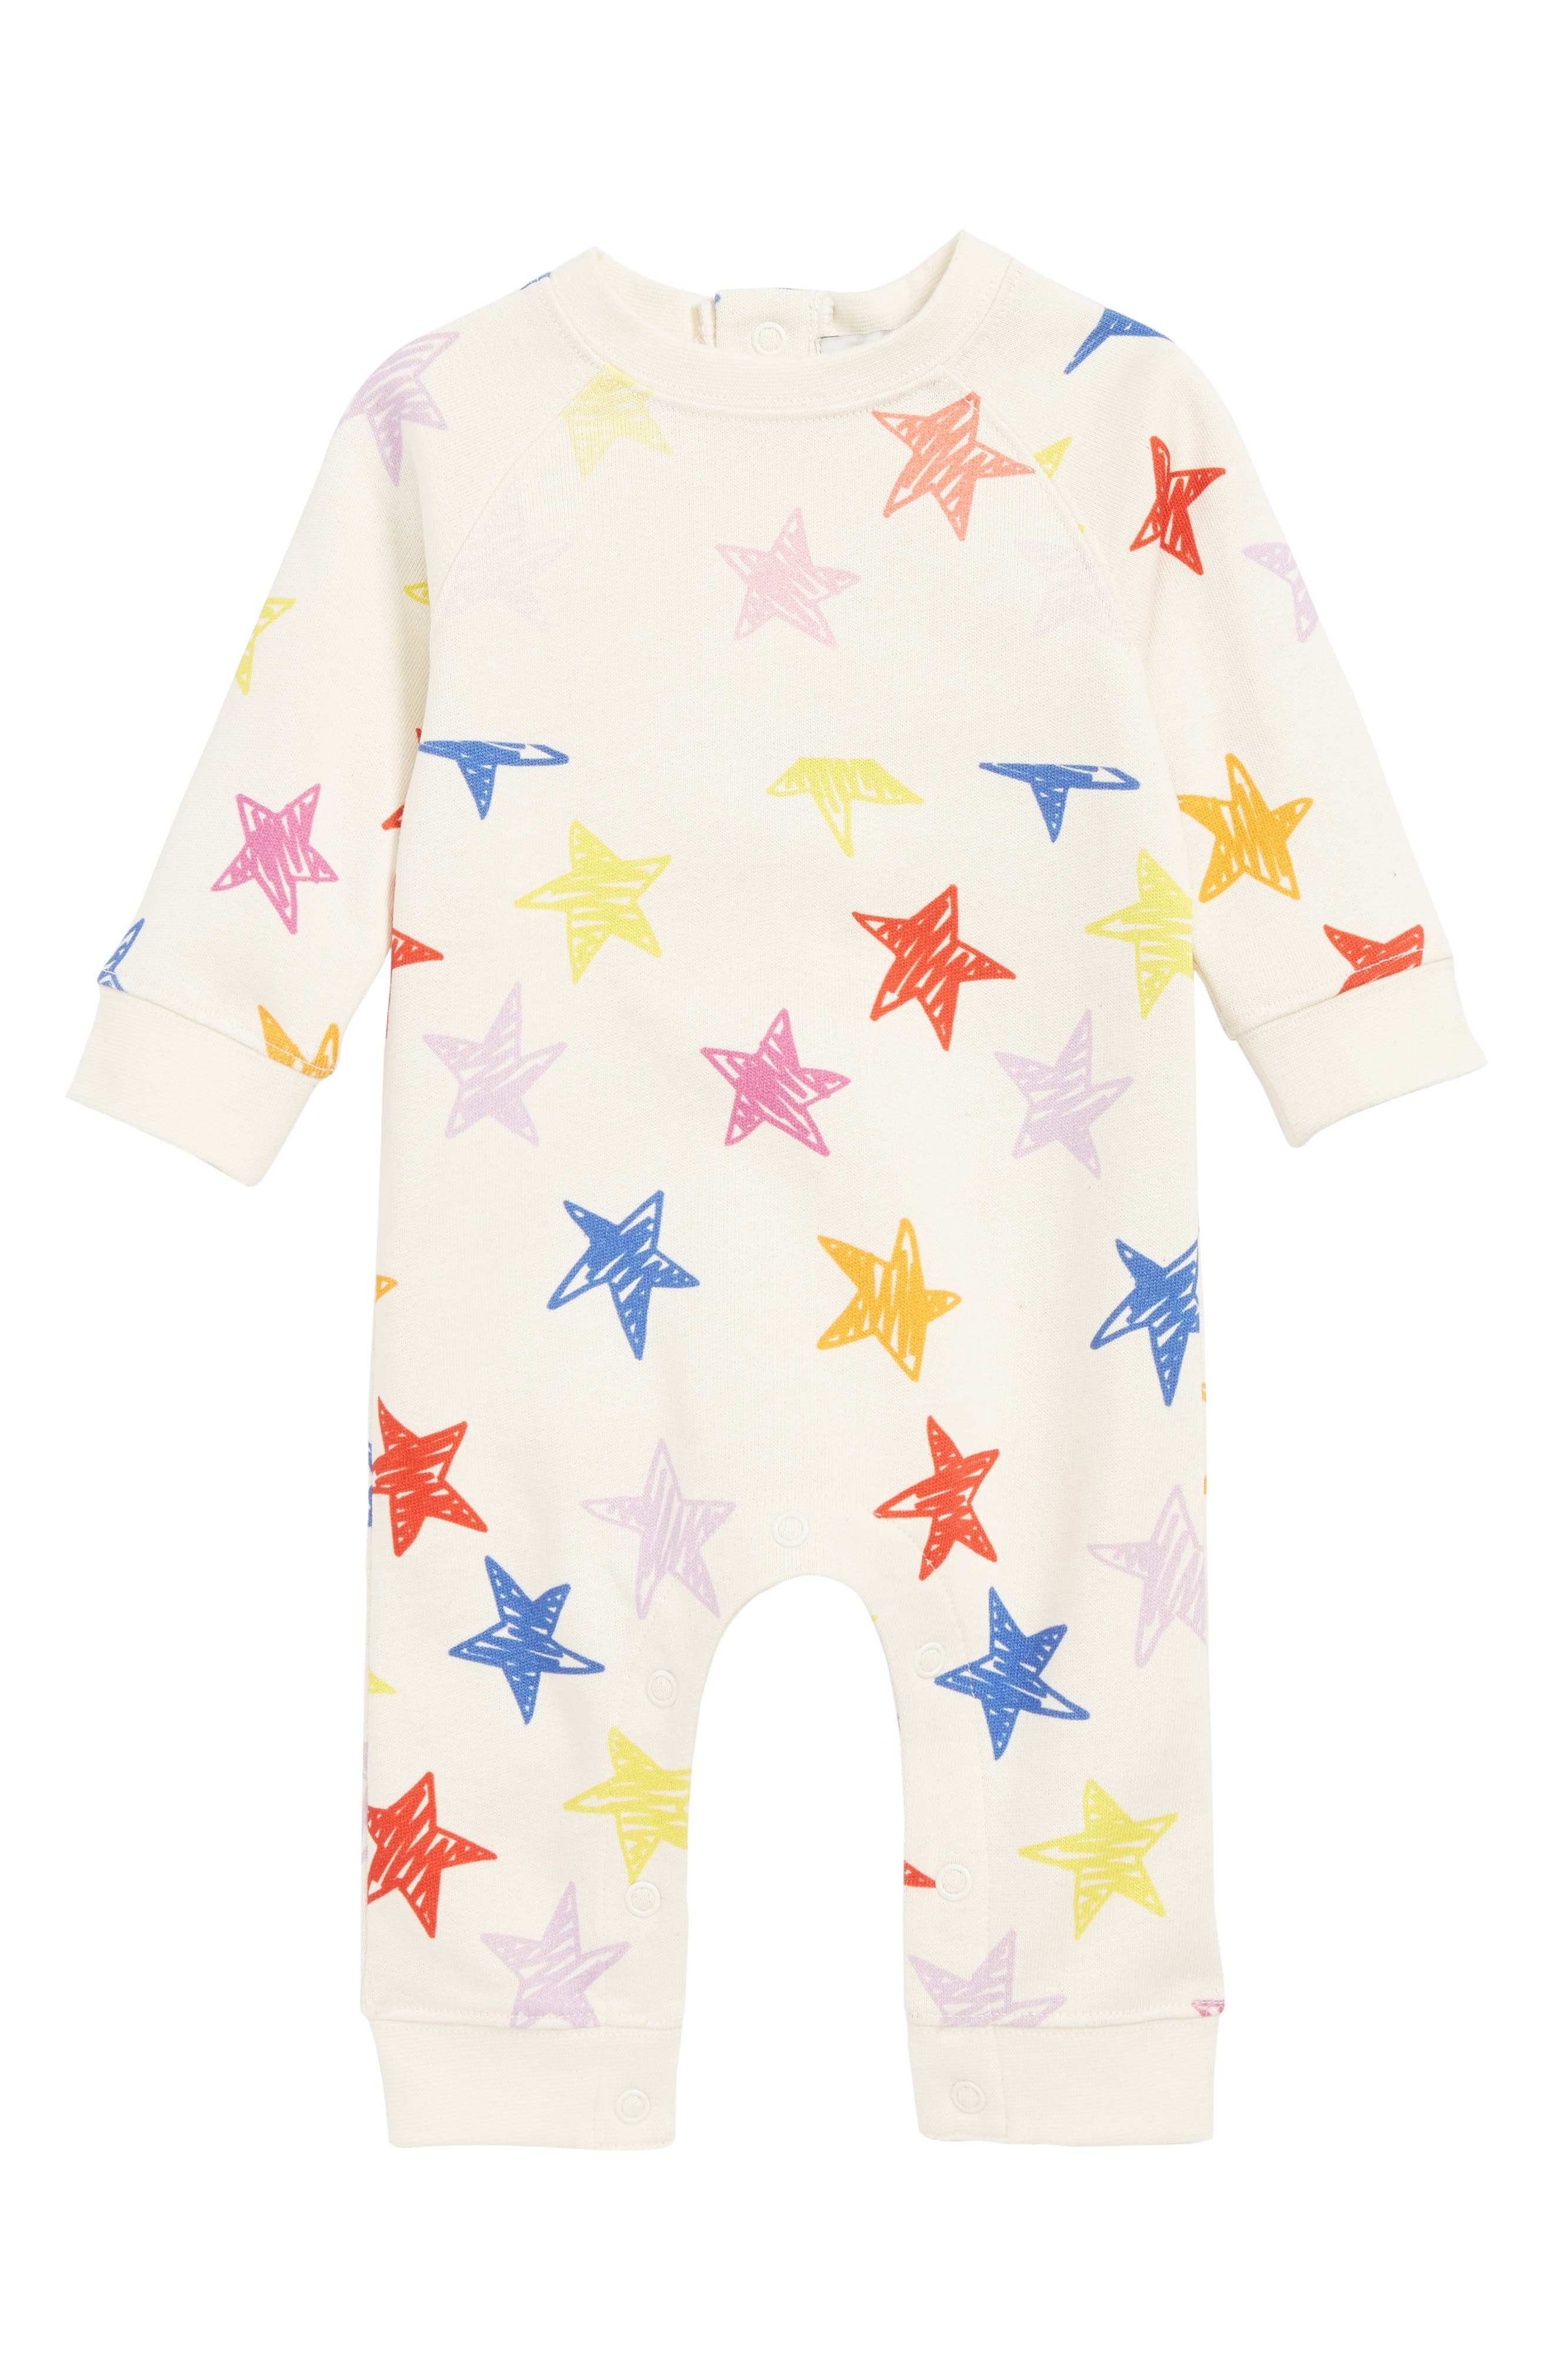 STELLA MCCARTNEY KIDS,                             Stella McCartney Stars Print Cotton Romper,                             Main thumbnail 1, color,                             9088 MULTI